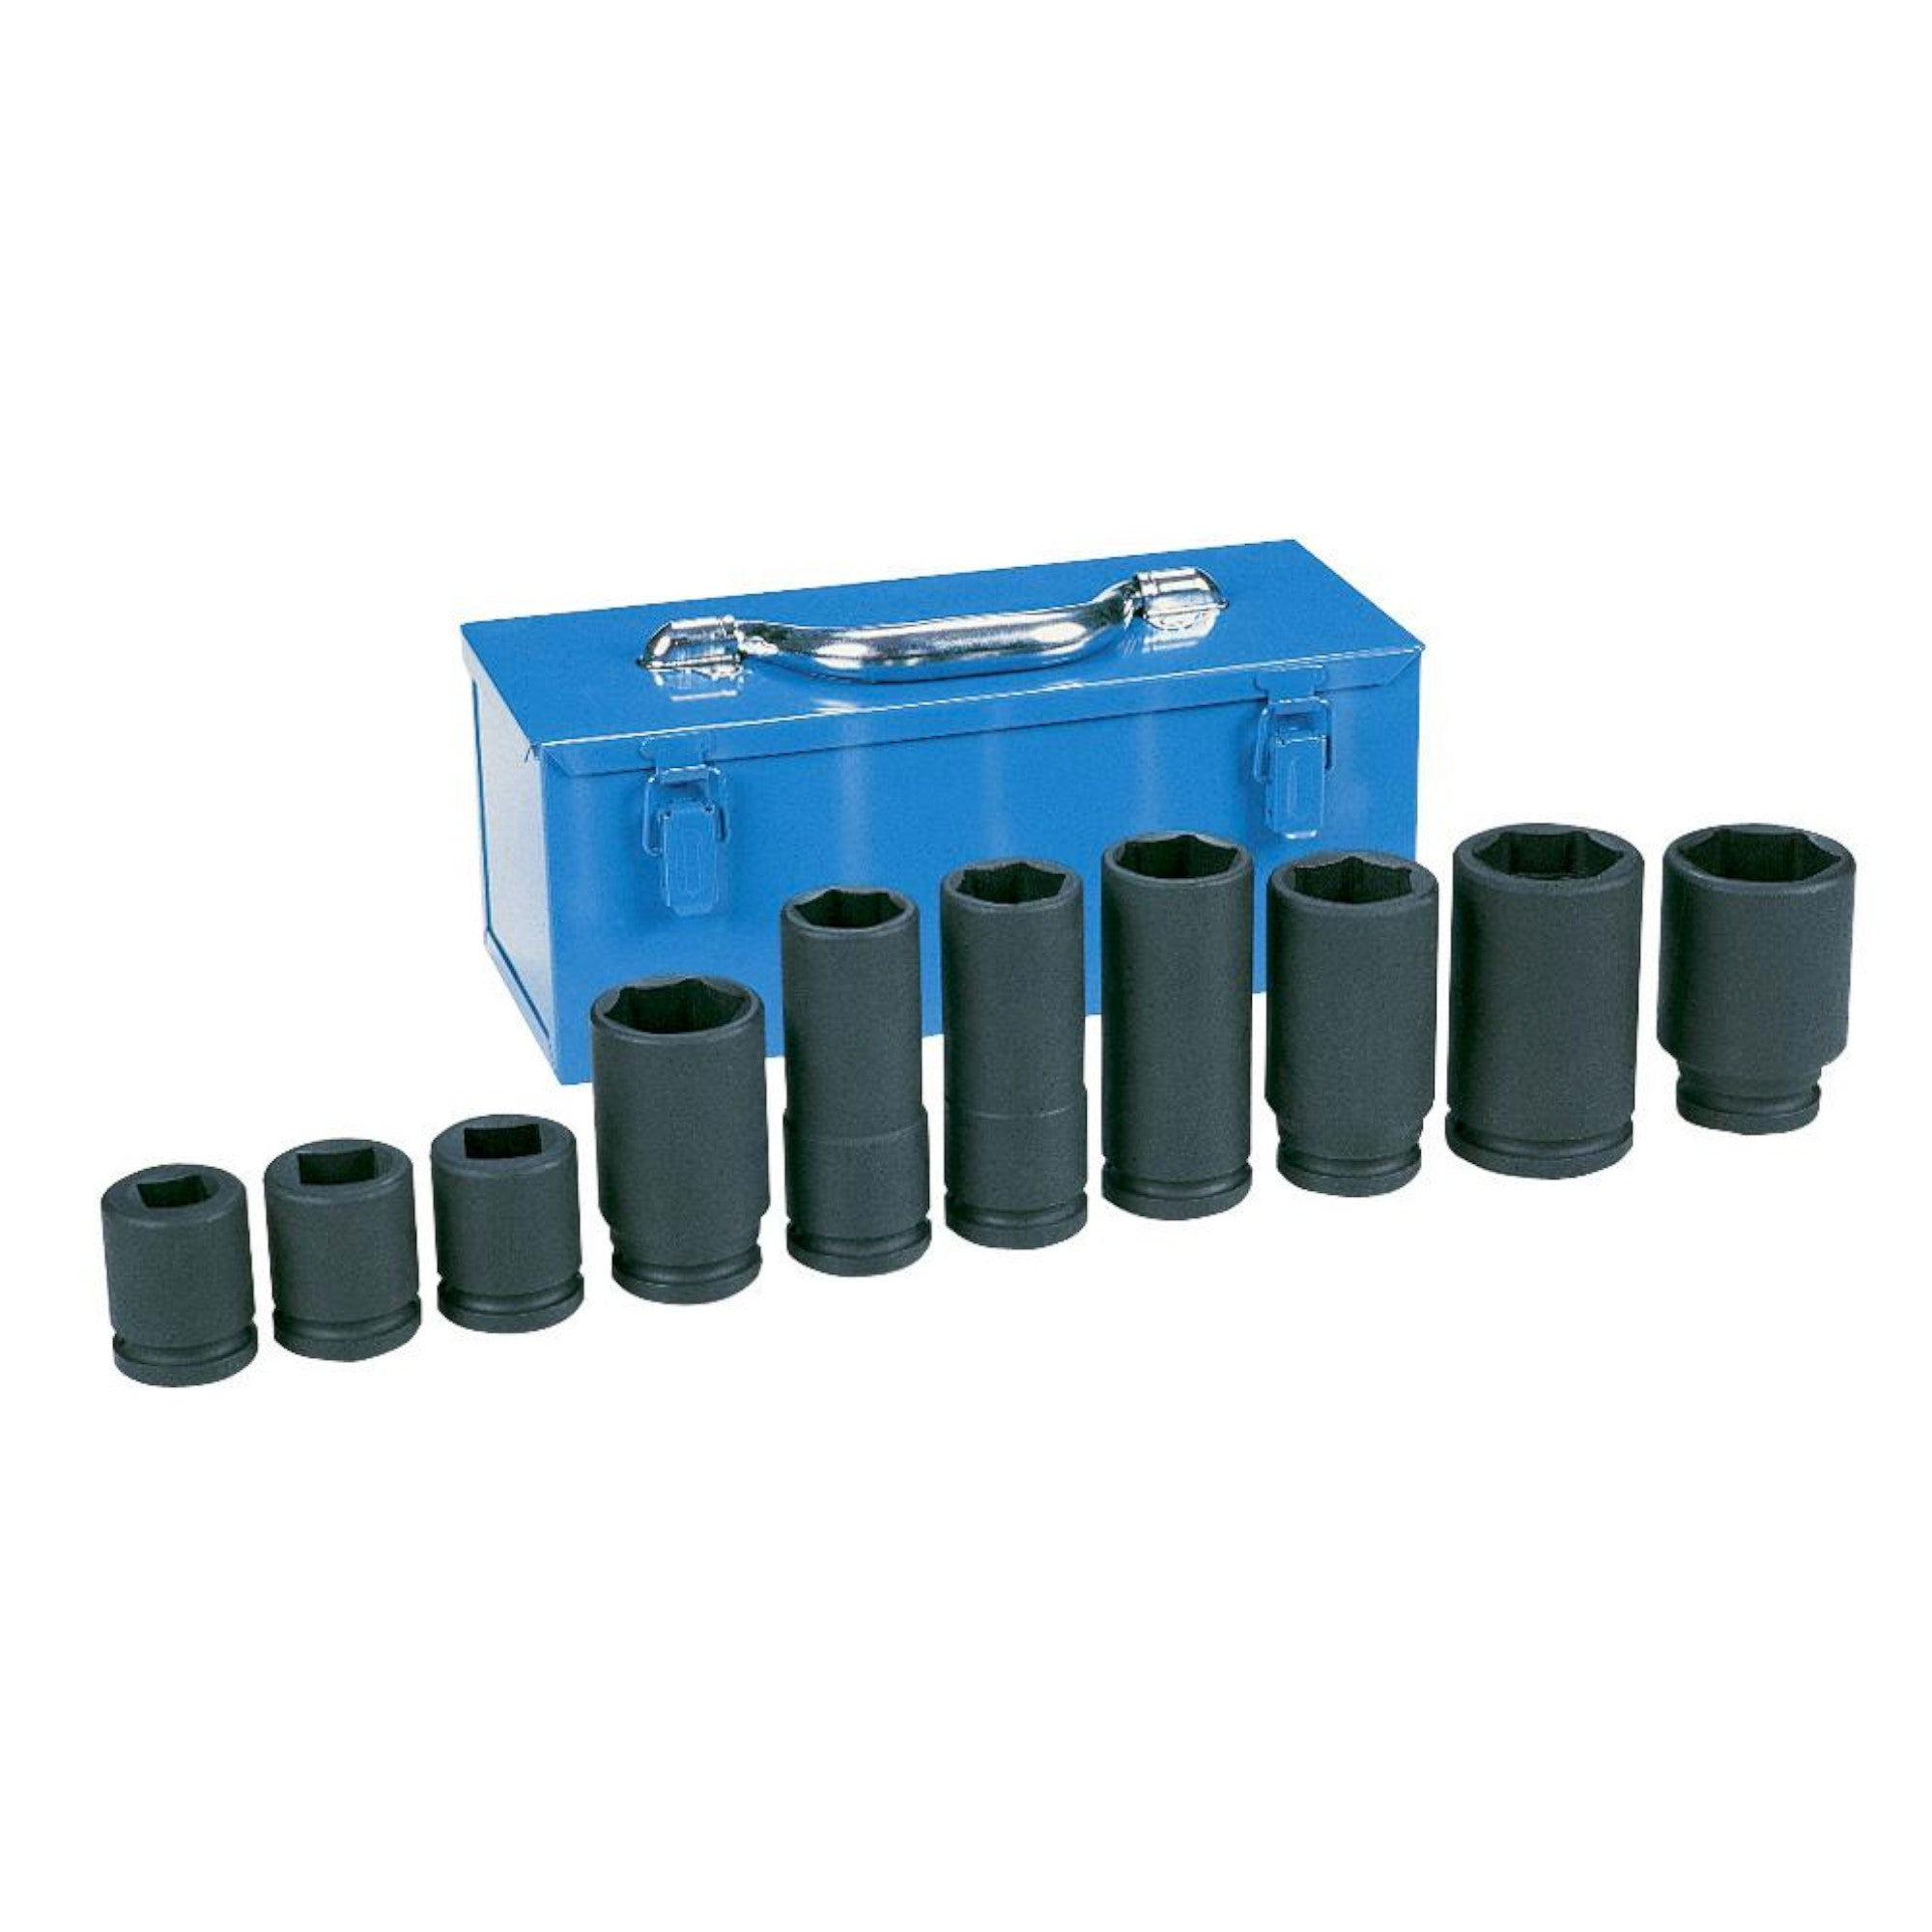 Truck Socket Set - 3/4″ Drive (10 Piece)(GP 8153)